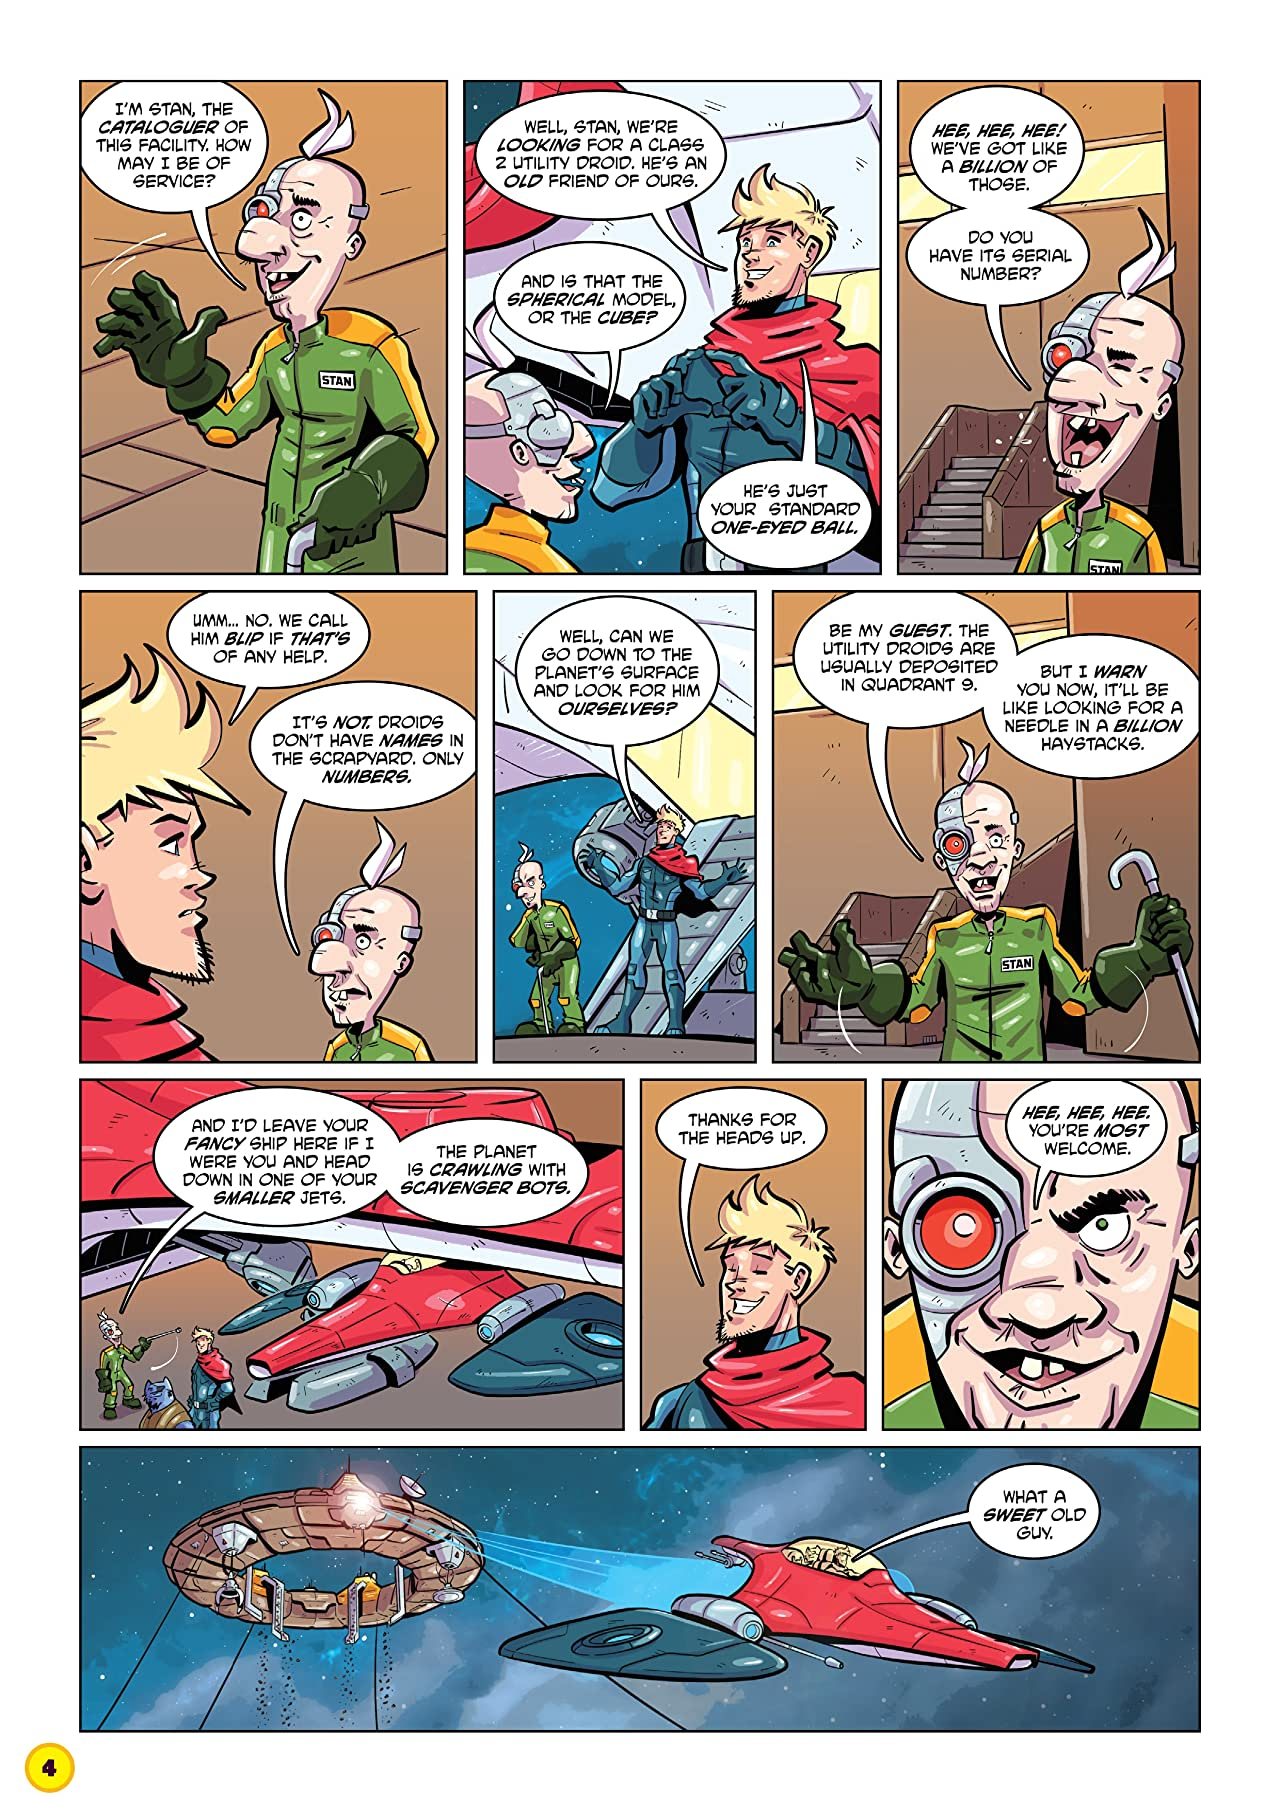 The Phoenix #258: The Weekly Story Comic